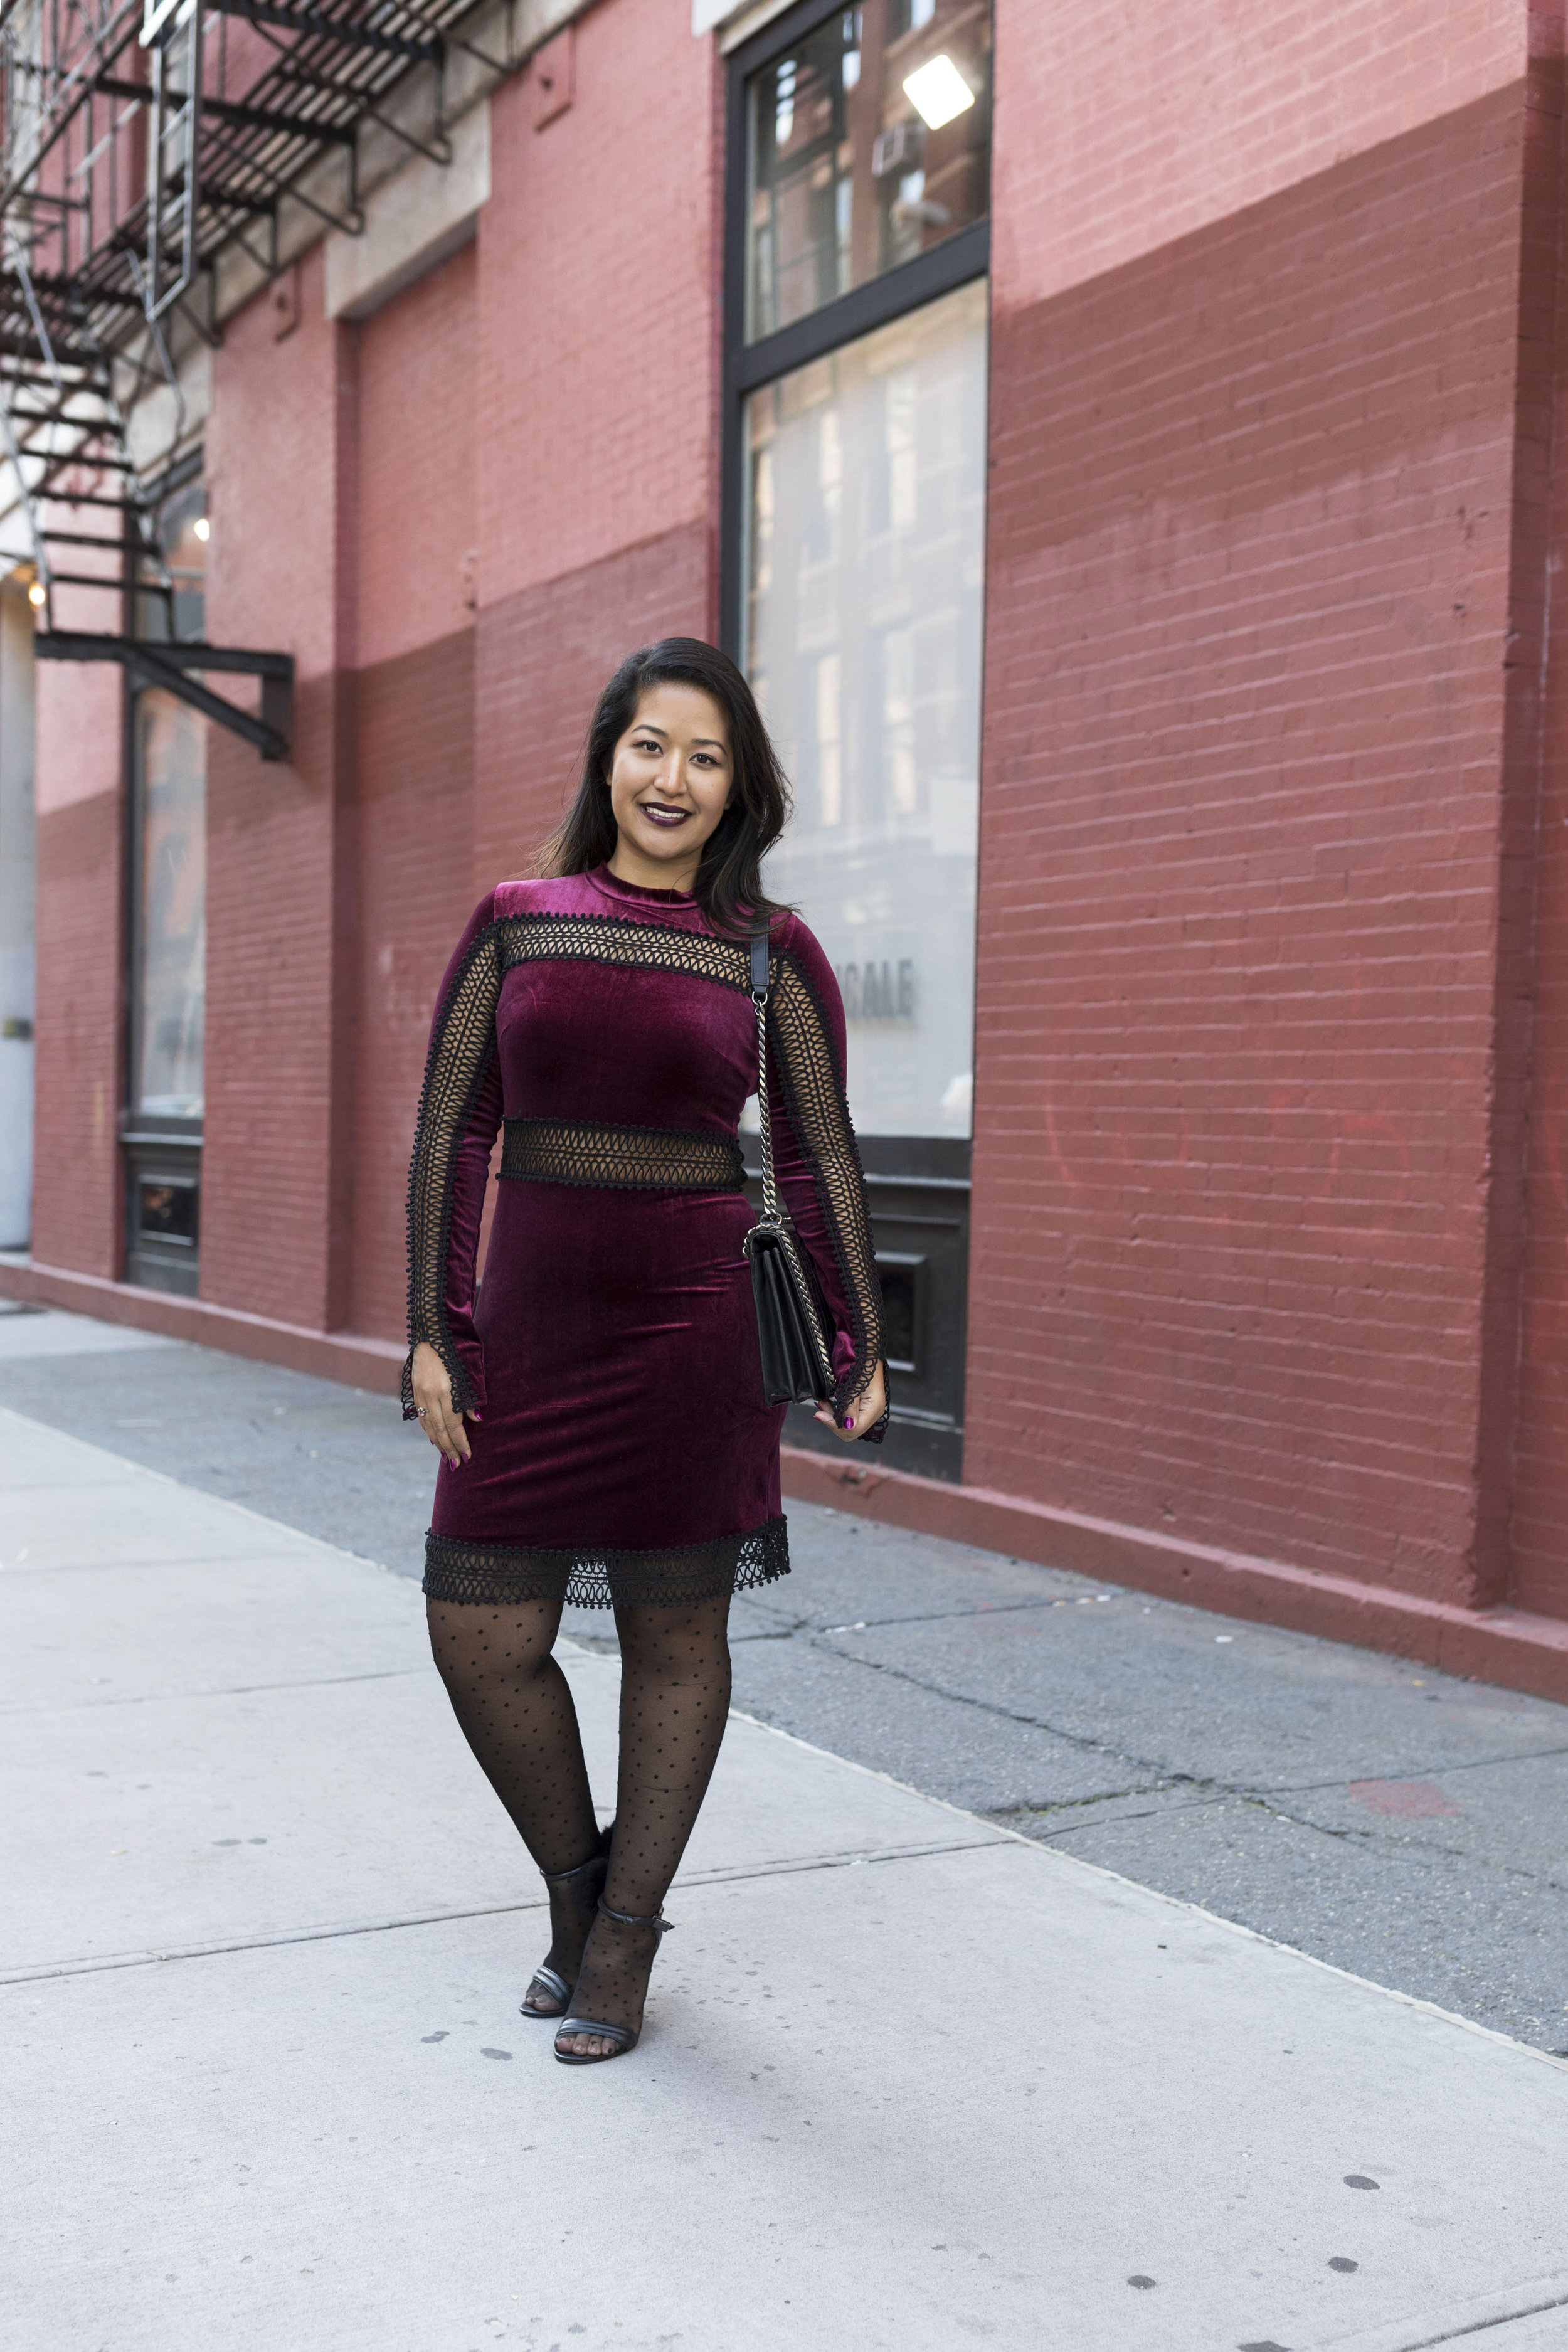 Krity S x Holiday Outfit x Century 21 Burgundy Velvet Dress and Faux Fur8.jpg